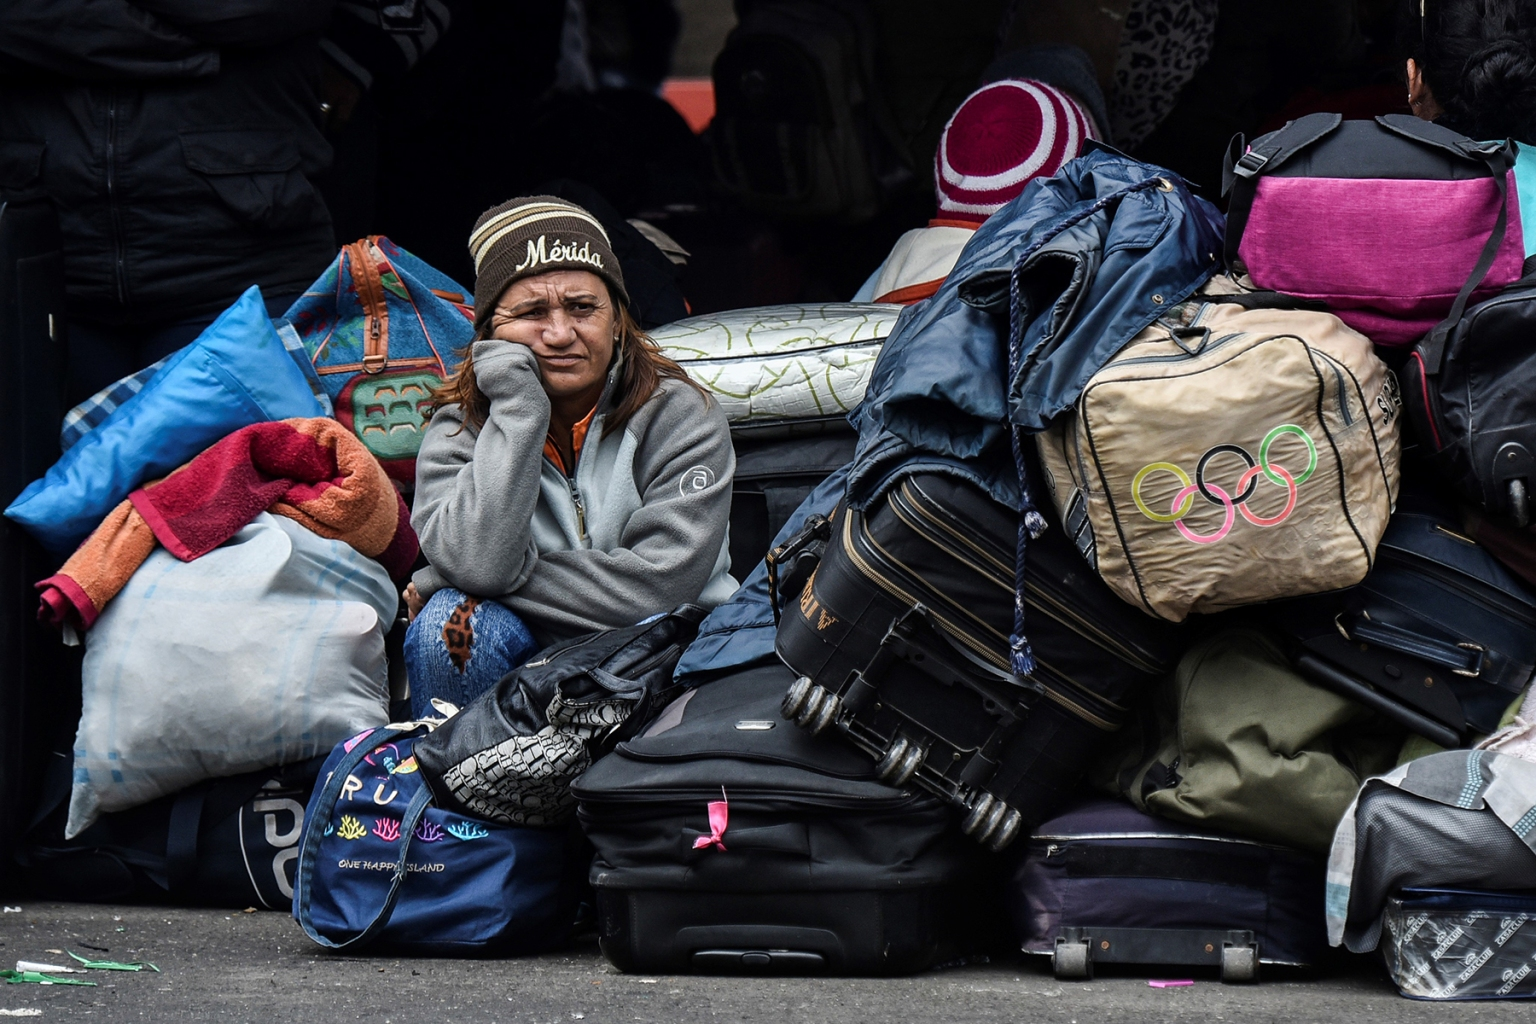 A Venezuelan woman waits outside the Colombian migration office along the Rumichaca International Bridge before crossing from Ipiales in Colombia to Tulcan in Ecuador on Aug. 20. LUIS ROBAYO/AFP/Getty Images